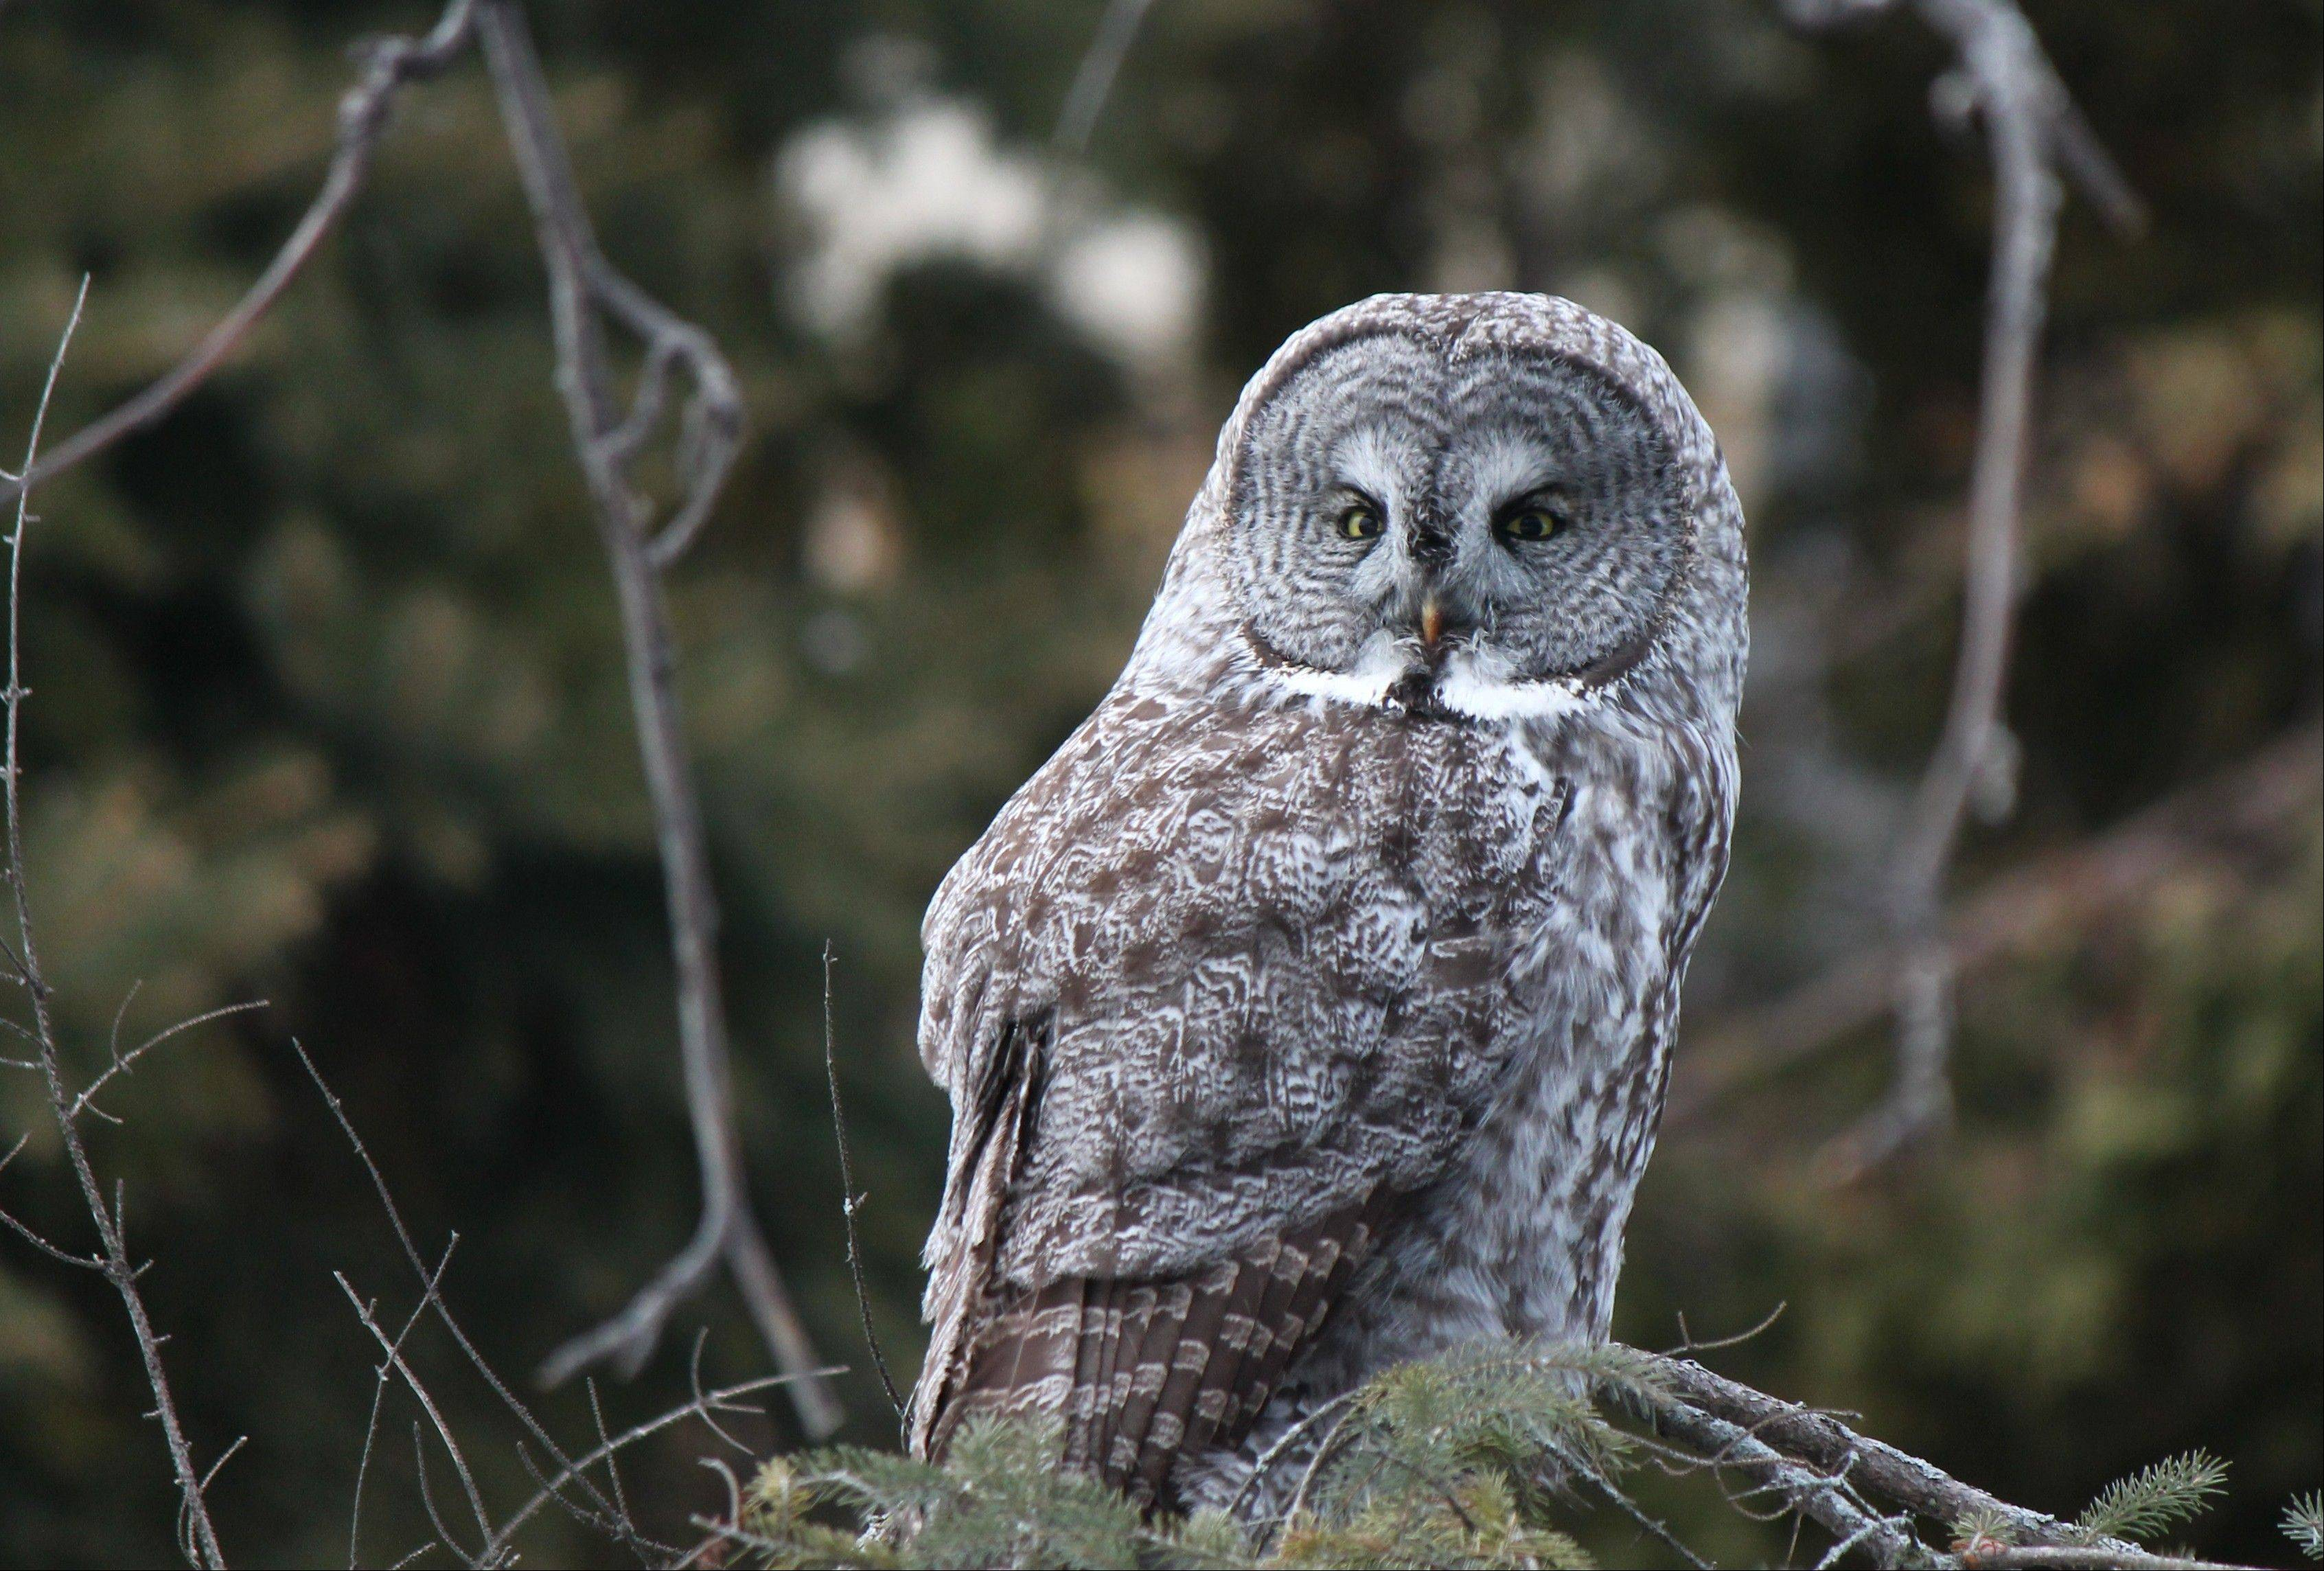 Great gray owls normally stay well north of our region. When this one turned up in Middleton, Wis., many birders declared an emergency road trip.